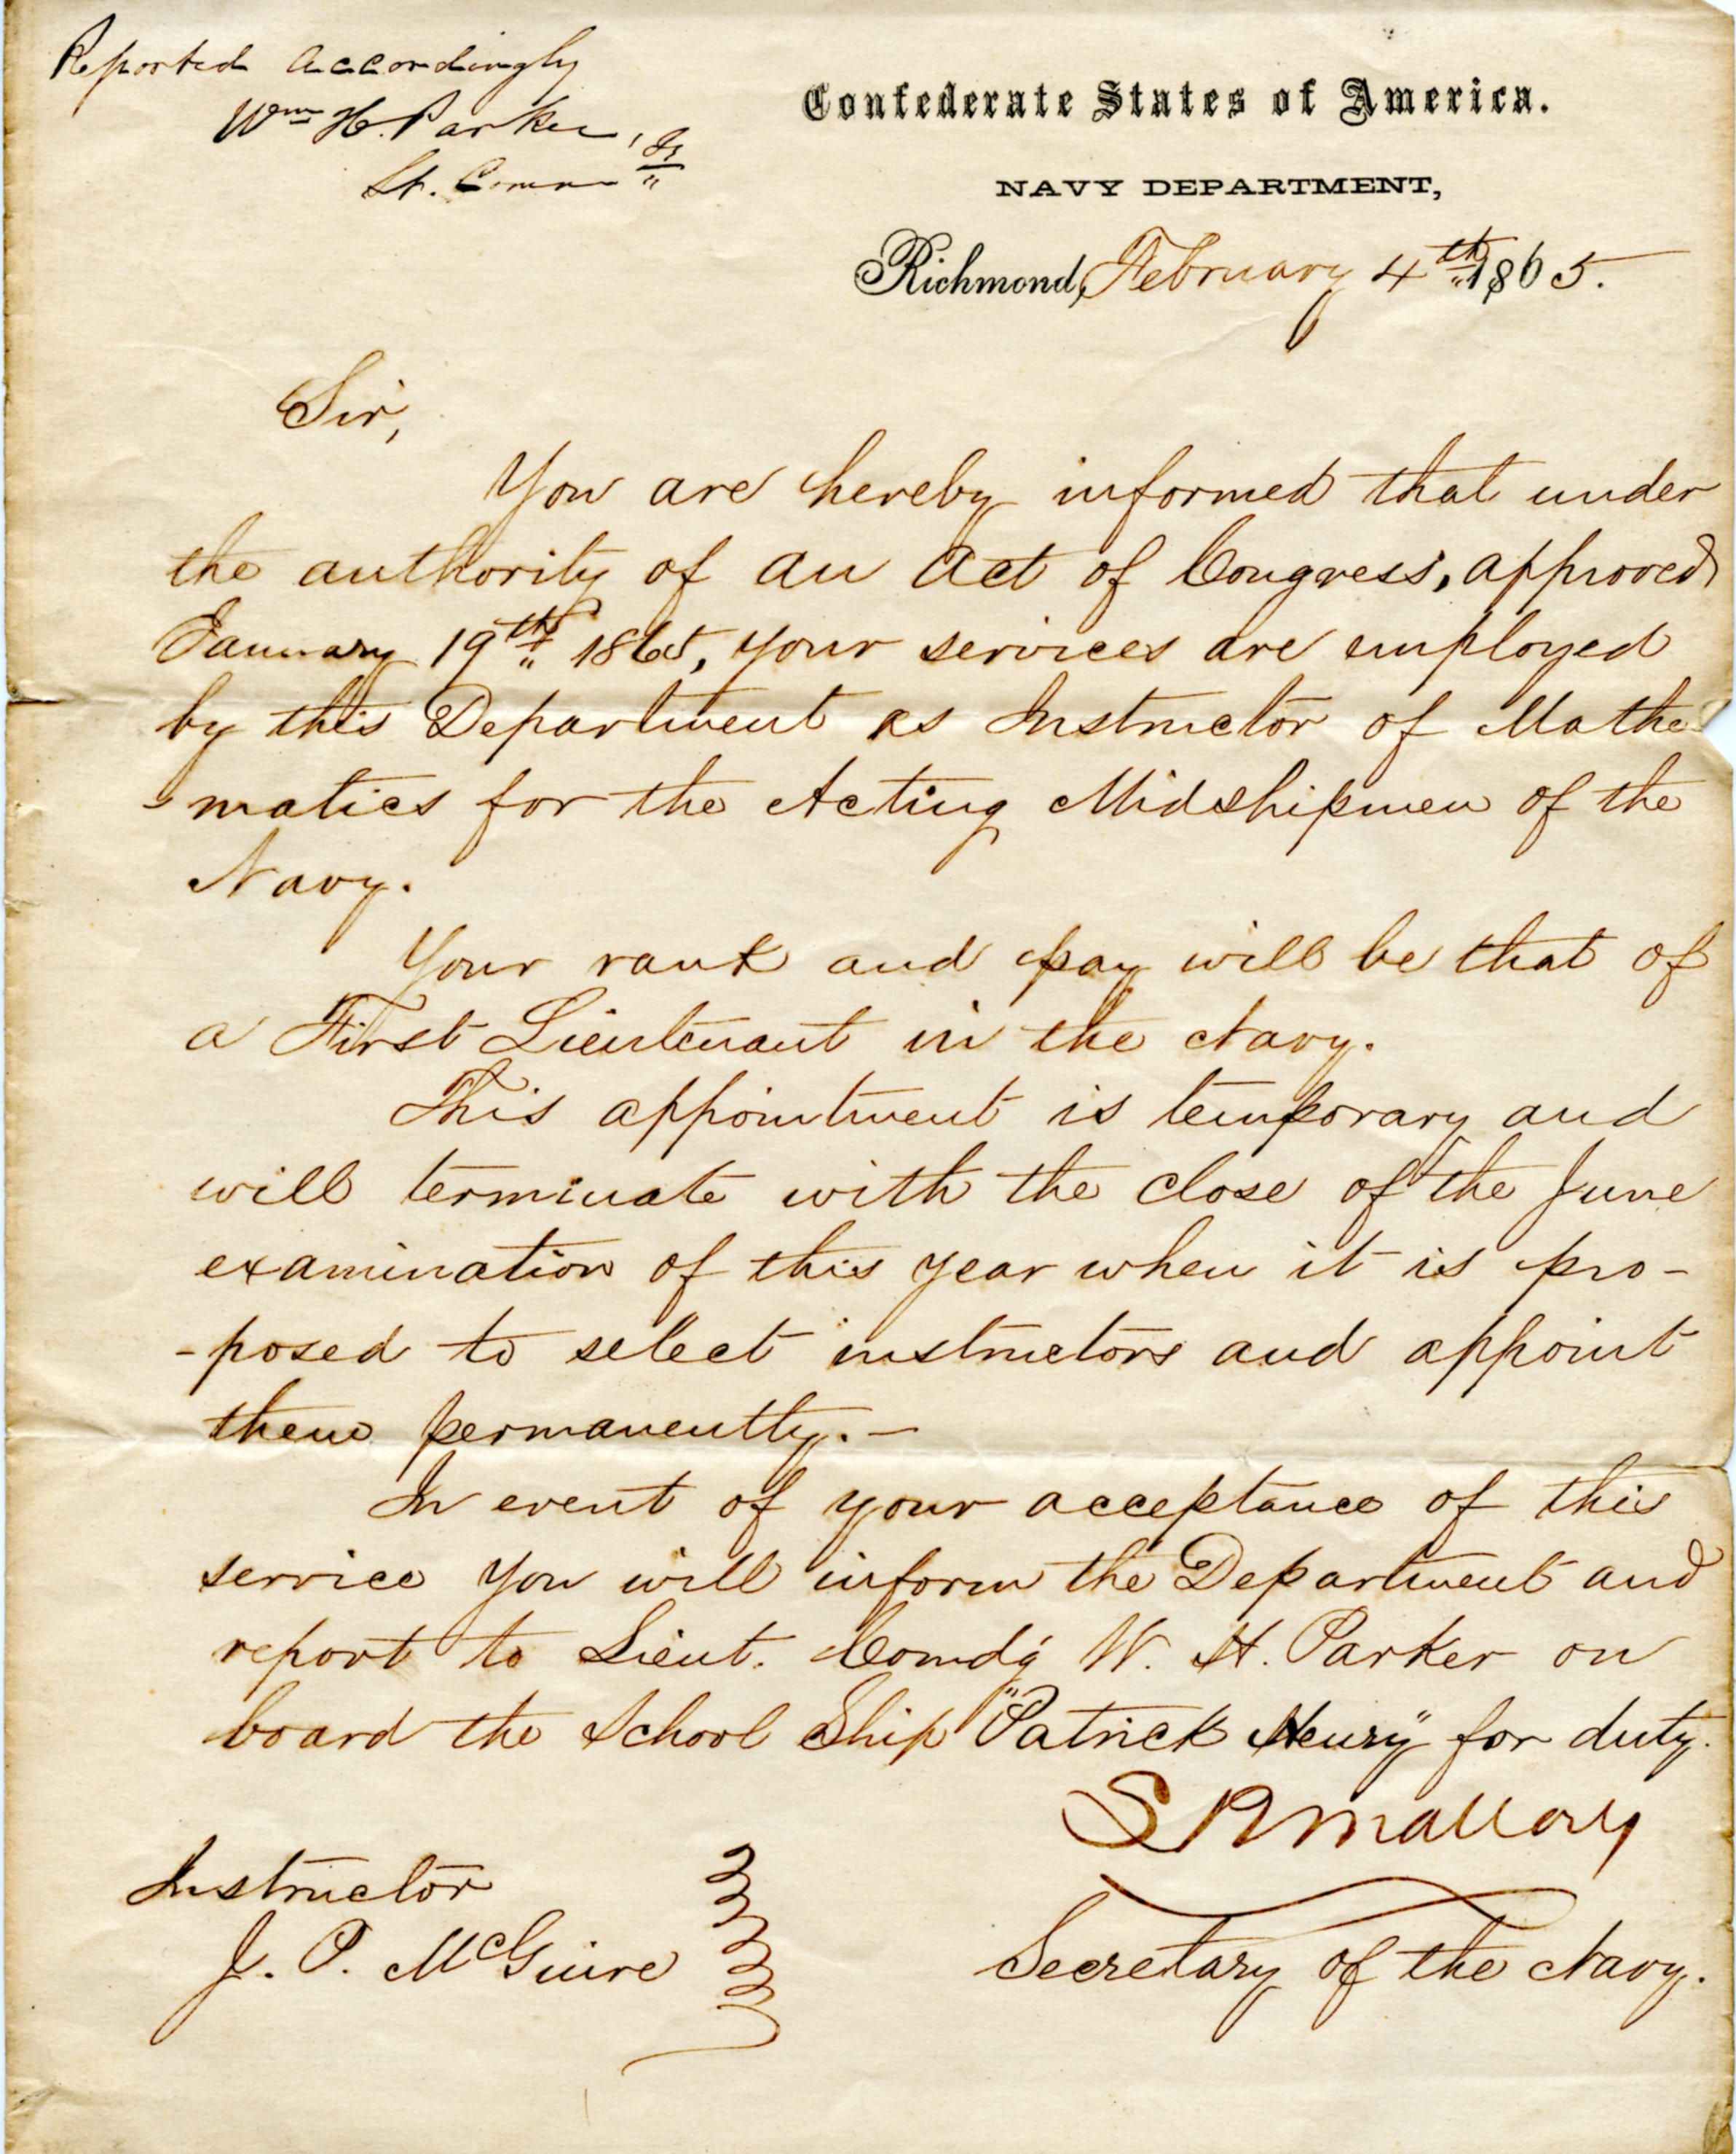 February 4, 1868<br>Letter from the Naval Department from the then Confederate States of America